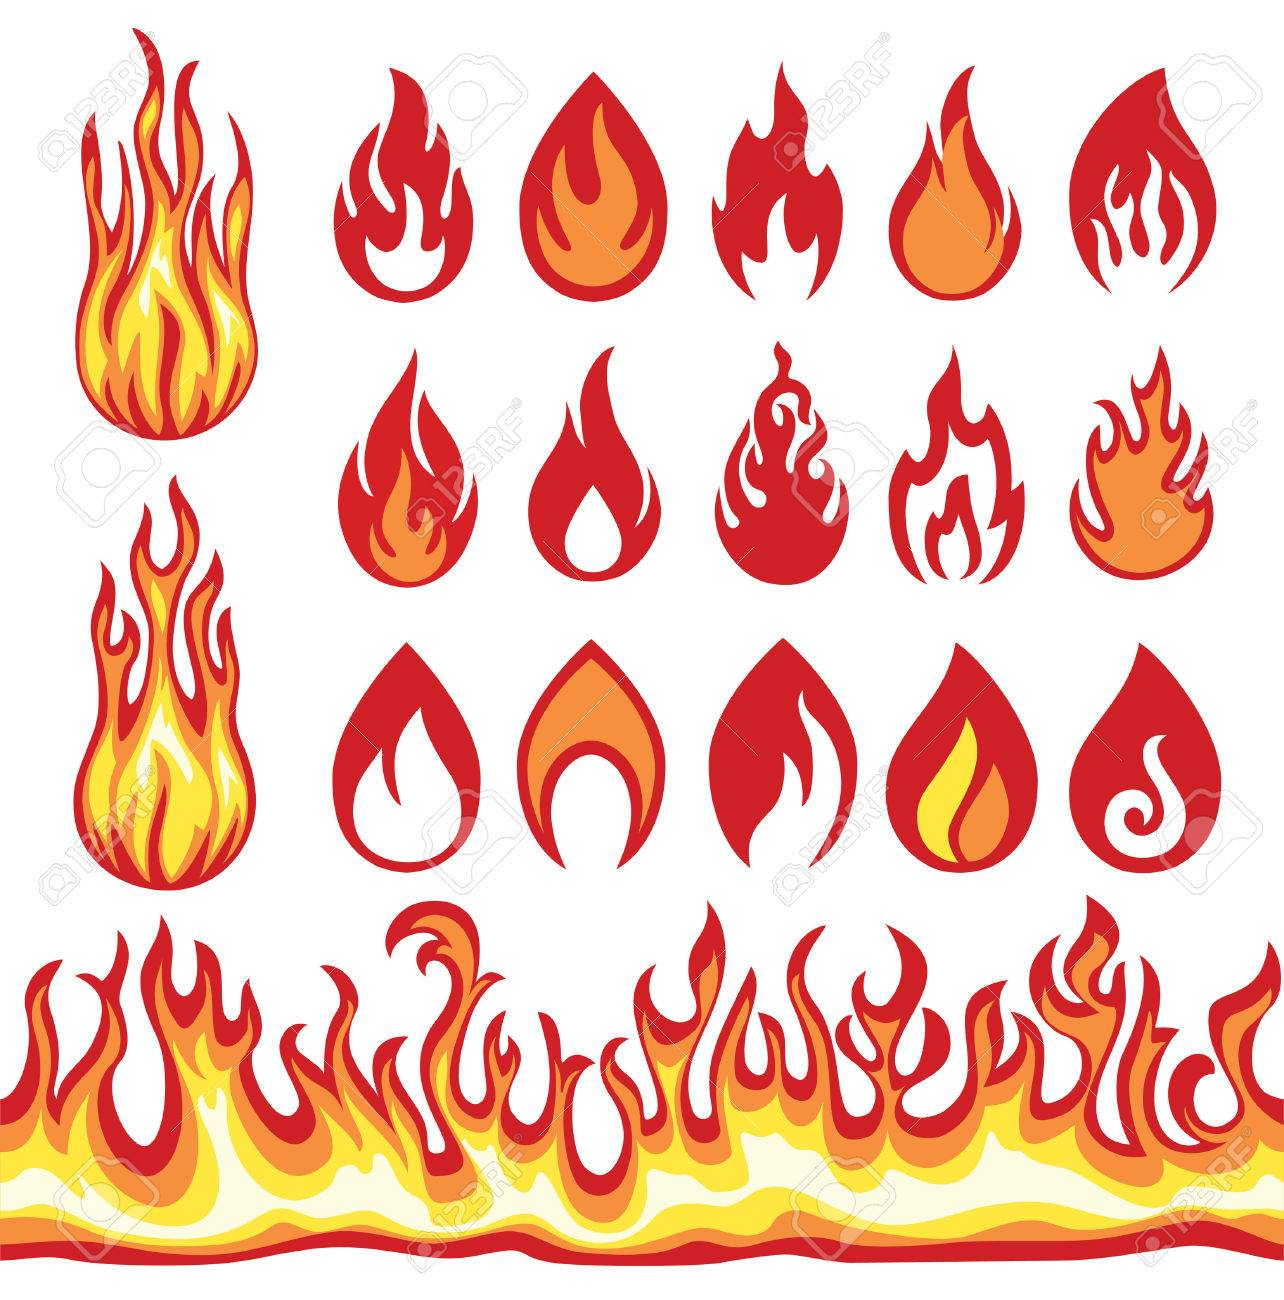 Set of Flame icons. Fire symbols. - 49278244